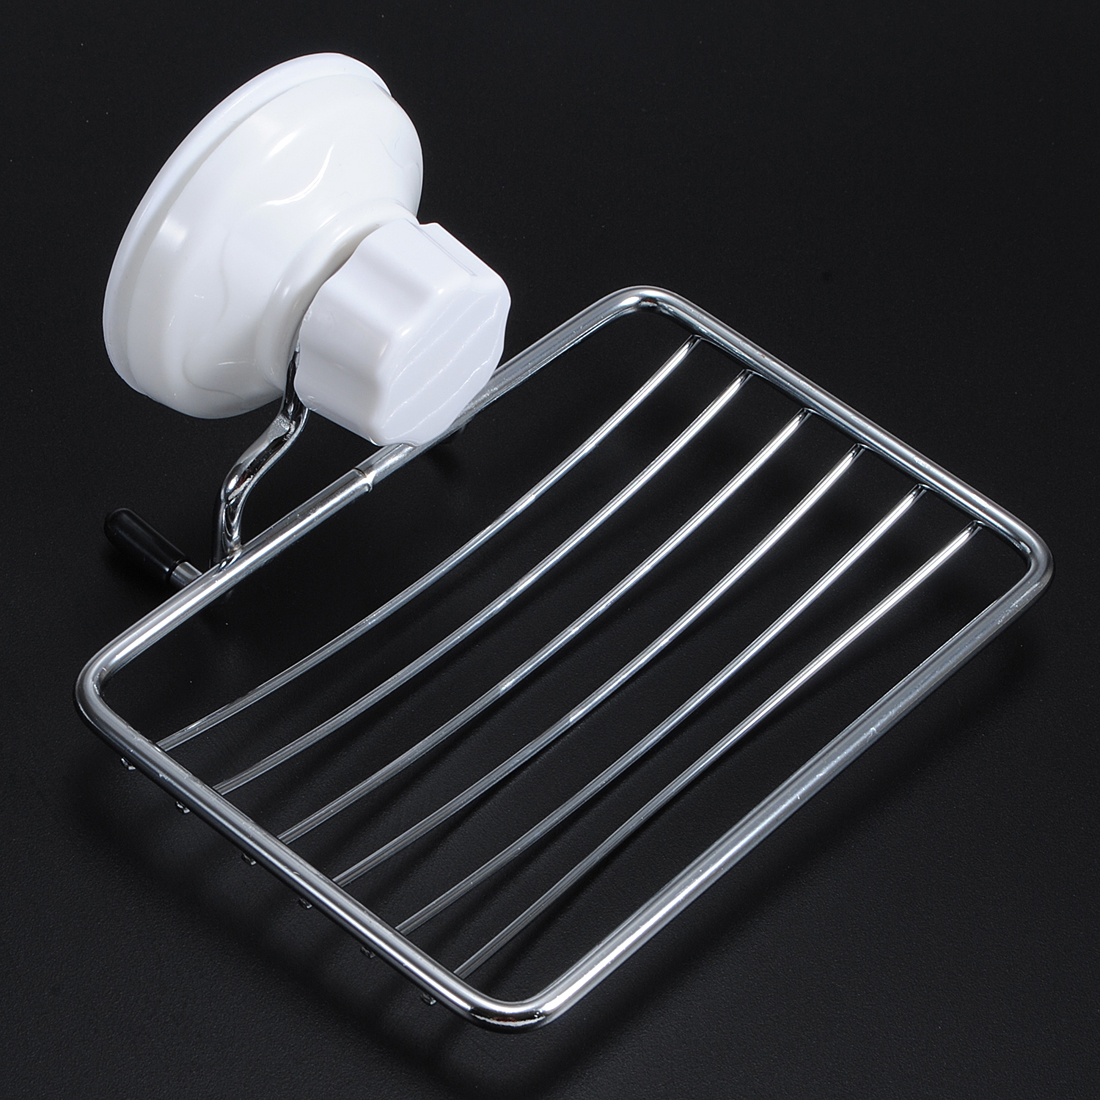 dish holder suction bathroom bath shower basket soap cup stainless steel wall ebay. Black Bedroom Furniture Sets. Home Design Ideas